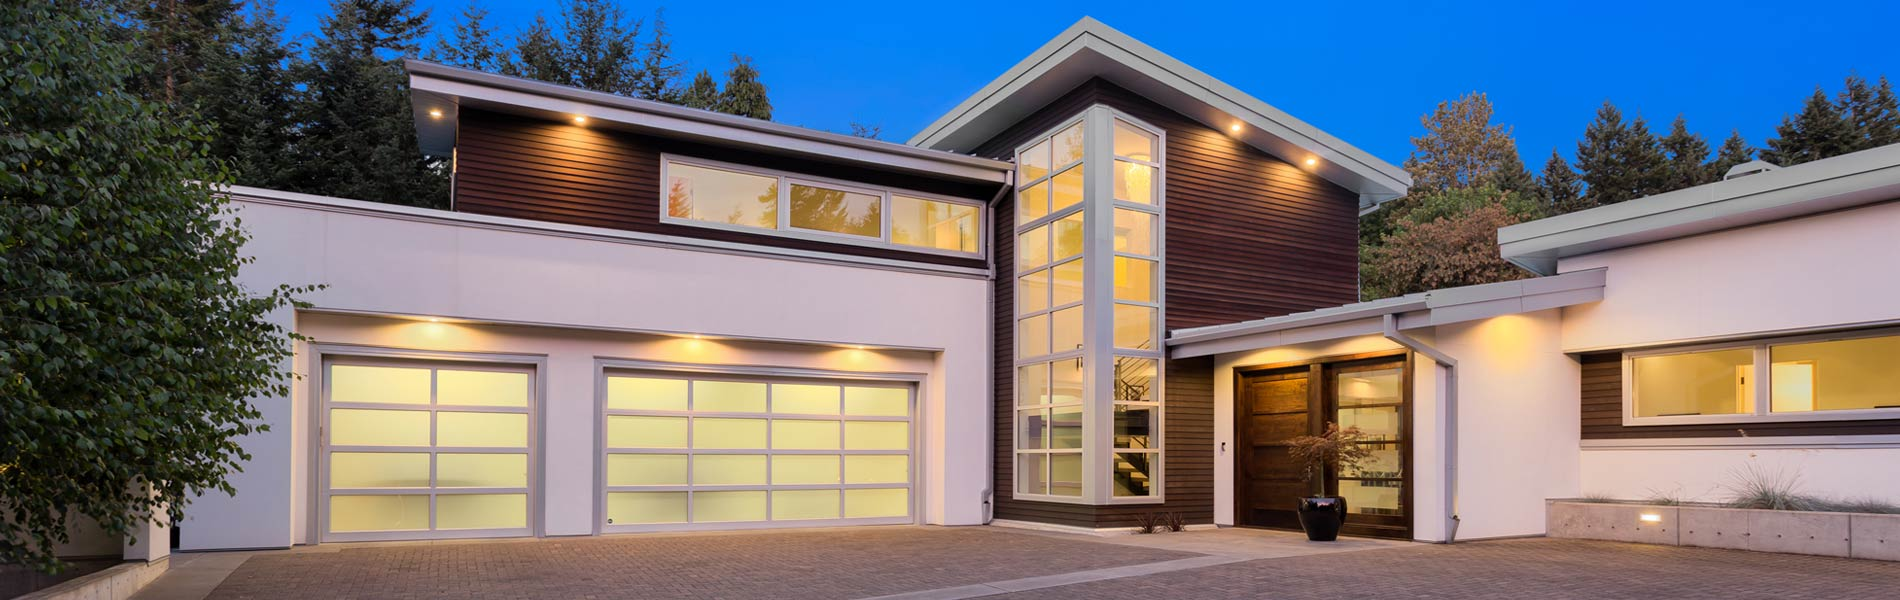 Garage Doors Store Repairs Mesa, AZ 888-691-8154